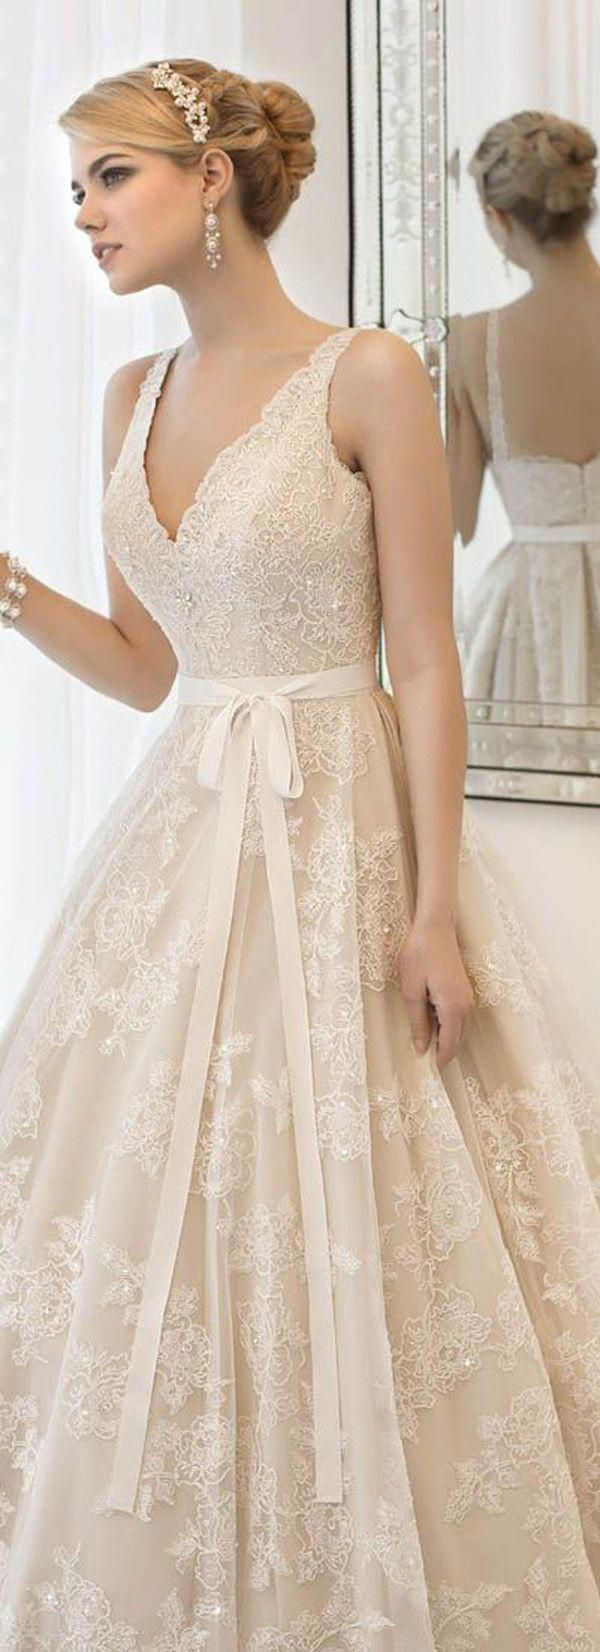 Vintage lace wedding dresses with ribbon lovely wedding dress in